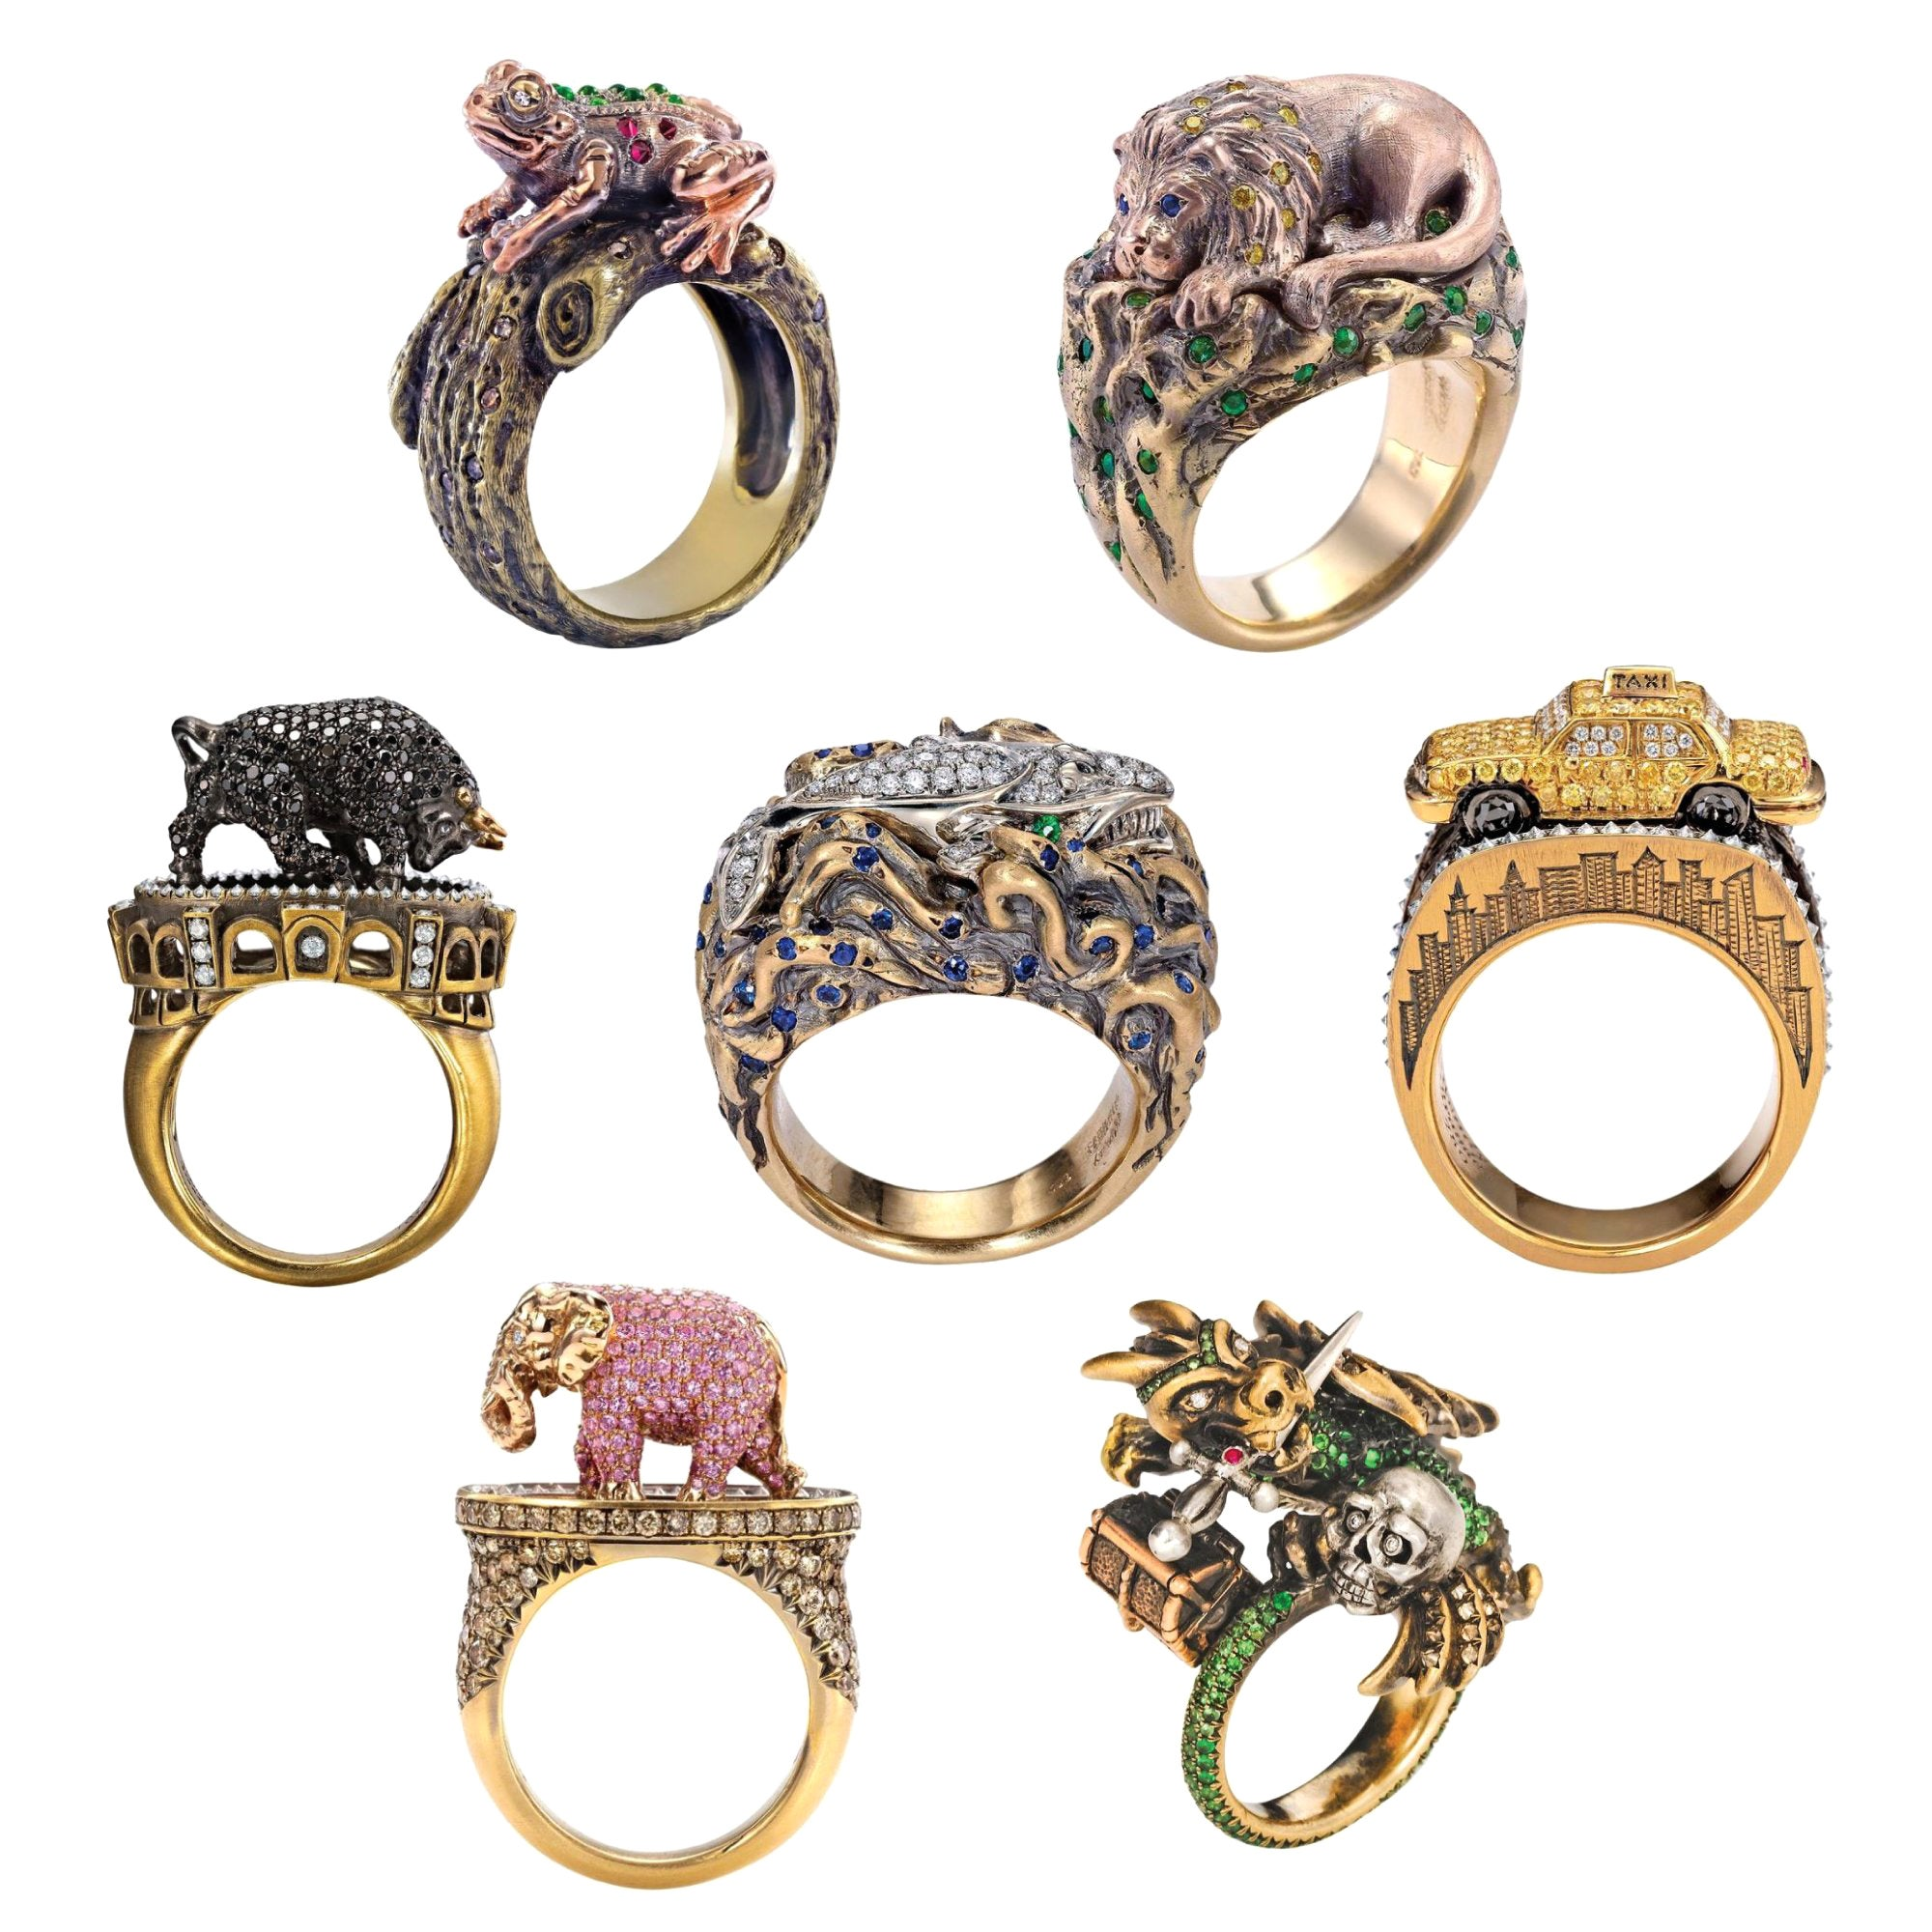 Wendy Brandes 7-Piece One-of-a-Kind Diamond and Gemstone Feminist Ring Set